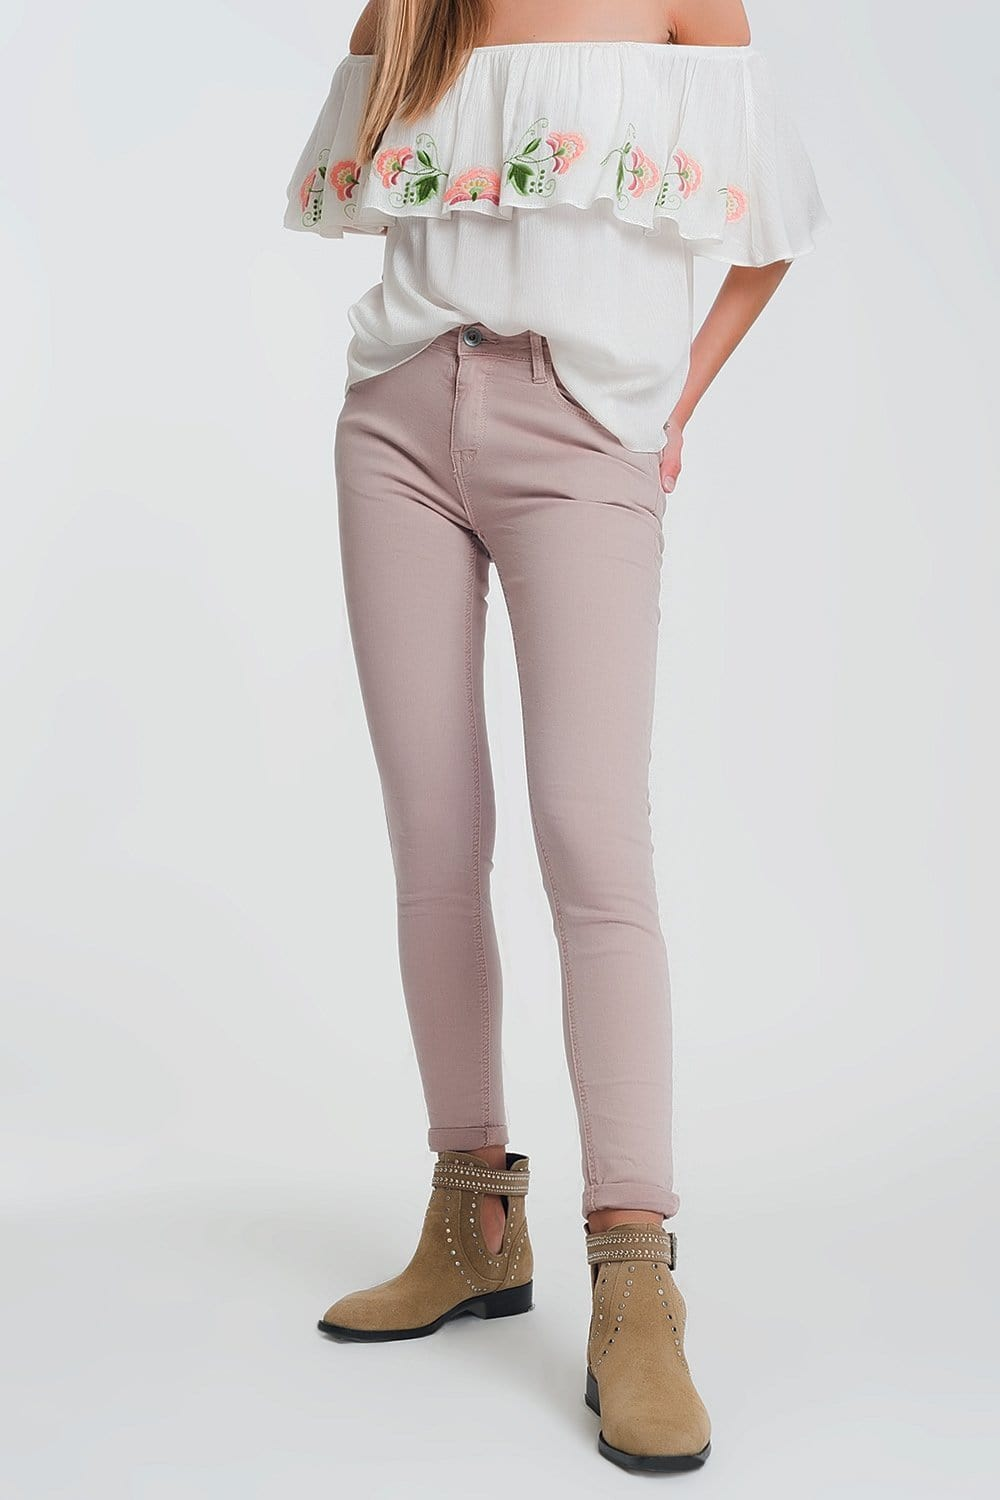 Q2 High waisted super skinny pants in pink